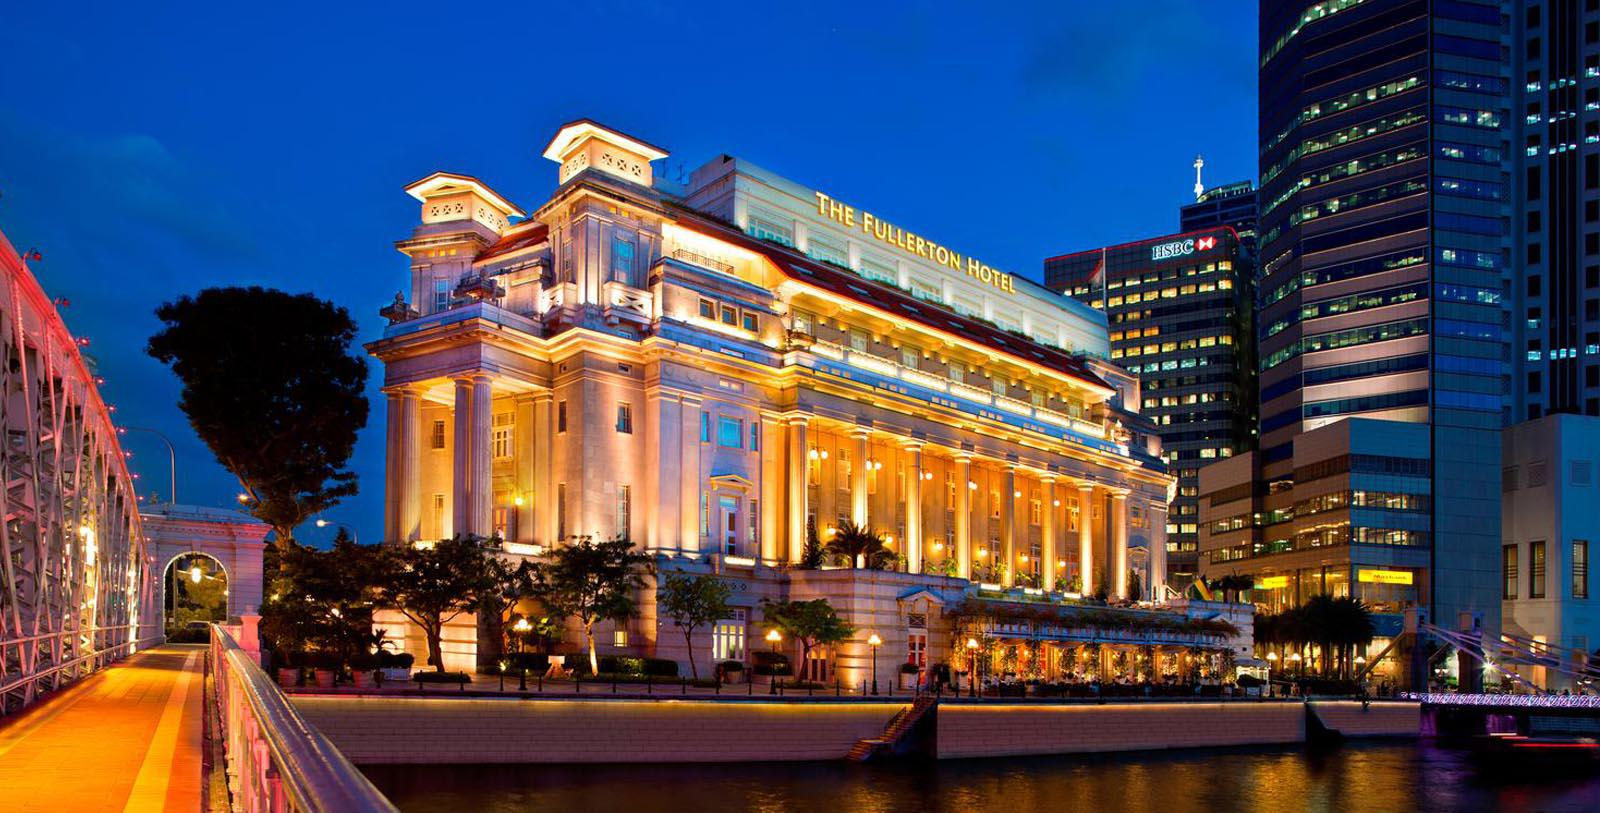 Image of Hotel Exterior The Fullerton Hotel Singapore, 1924, Member of Historic Hotels Worldwide, in Singapore, Special Offers, Discounted Rates, Families, Romantic Escape, Honeymoons, Anniversaries, Reunions